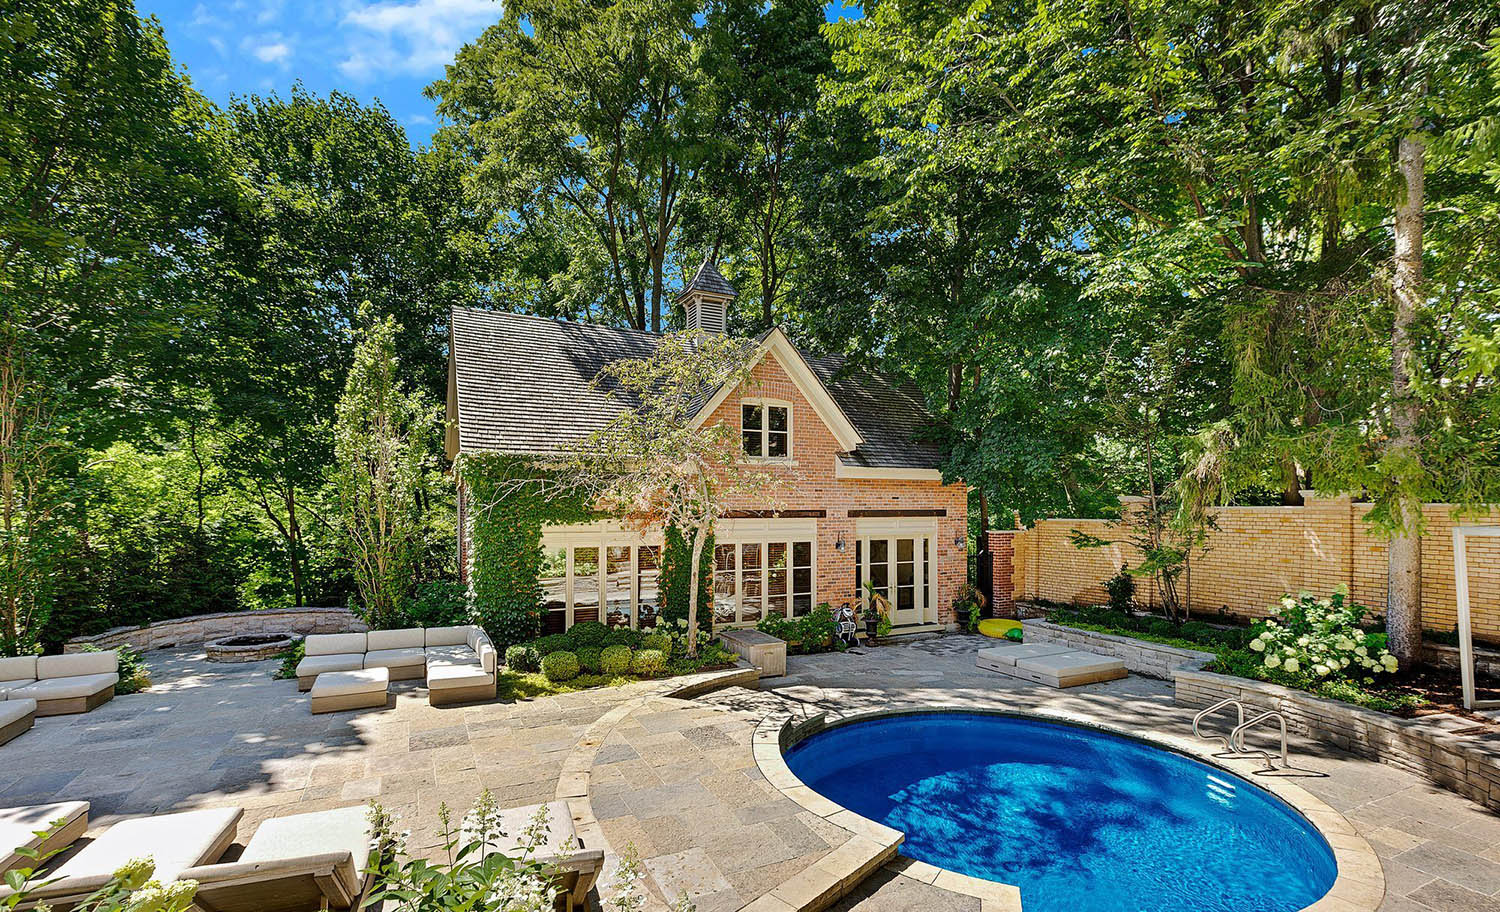 Large pool house design with red brick walls and tan trim. Wall ivy. Round in ground spa pool. Large stone patio with seating poolside.